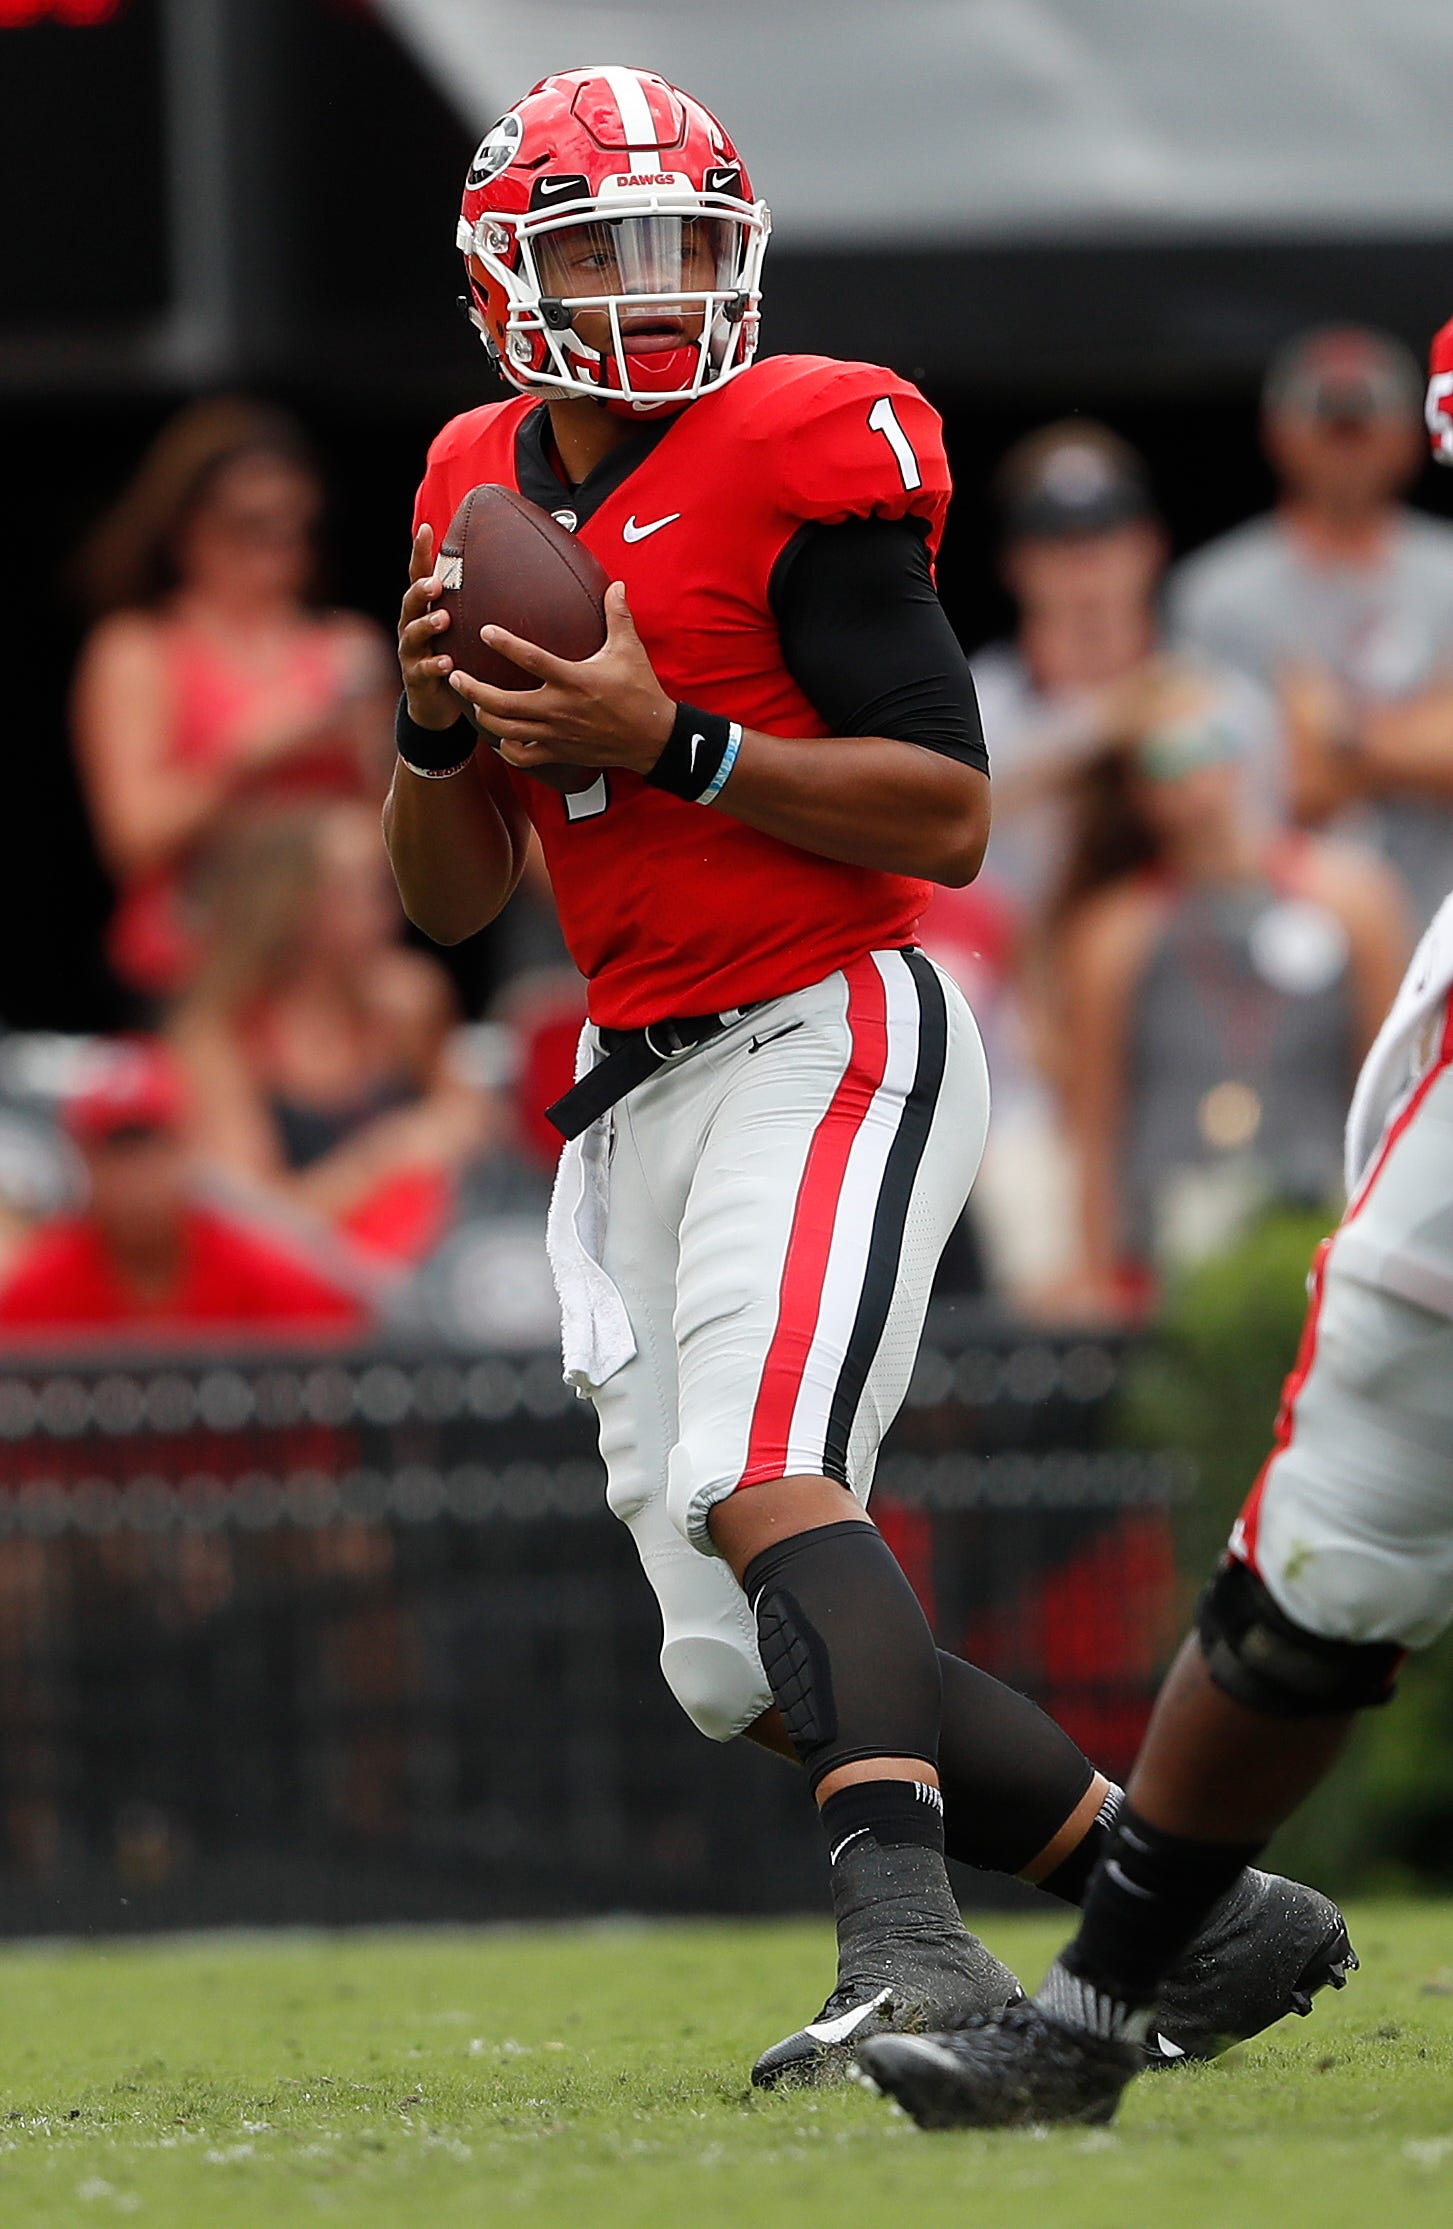 Fromm leads No. 3 Georgia past Middle Tennessee 49-7